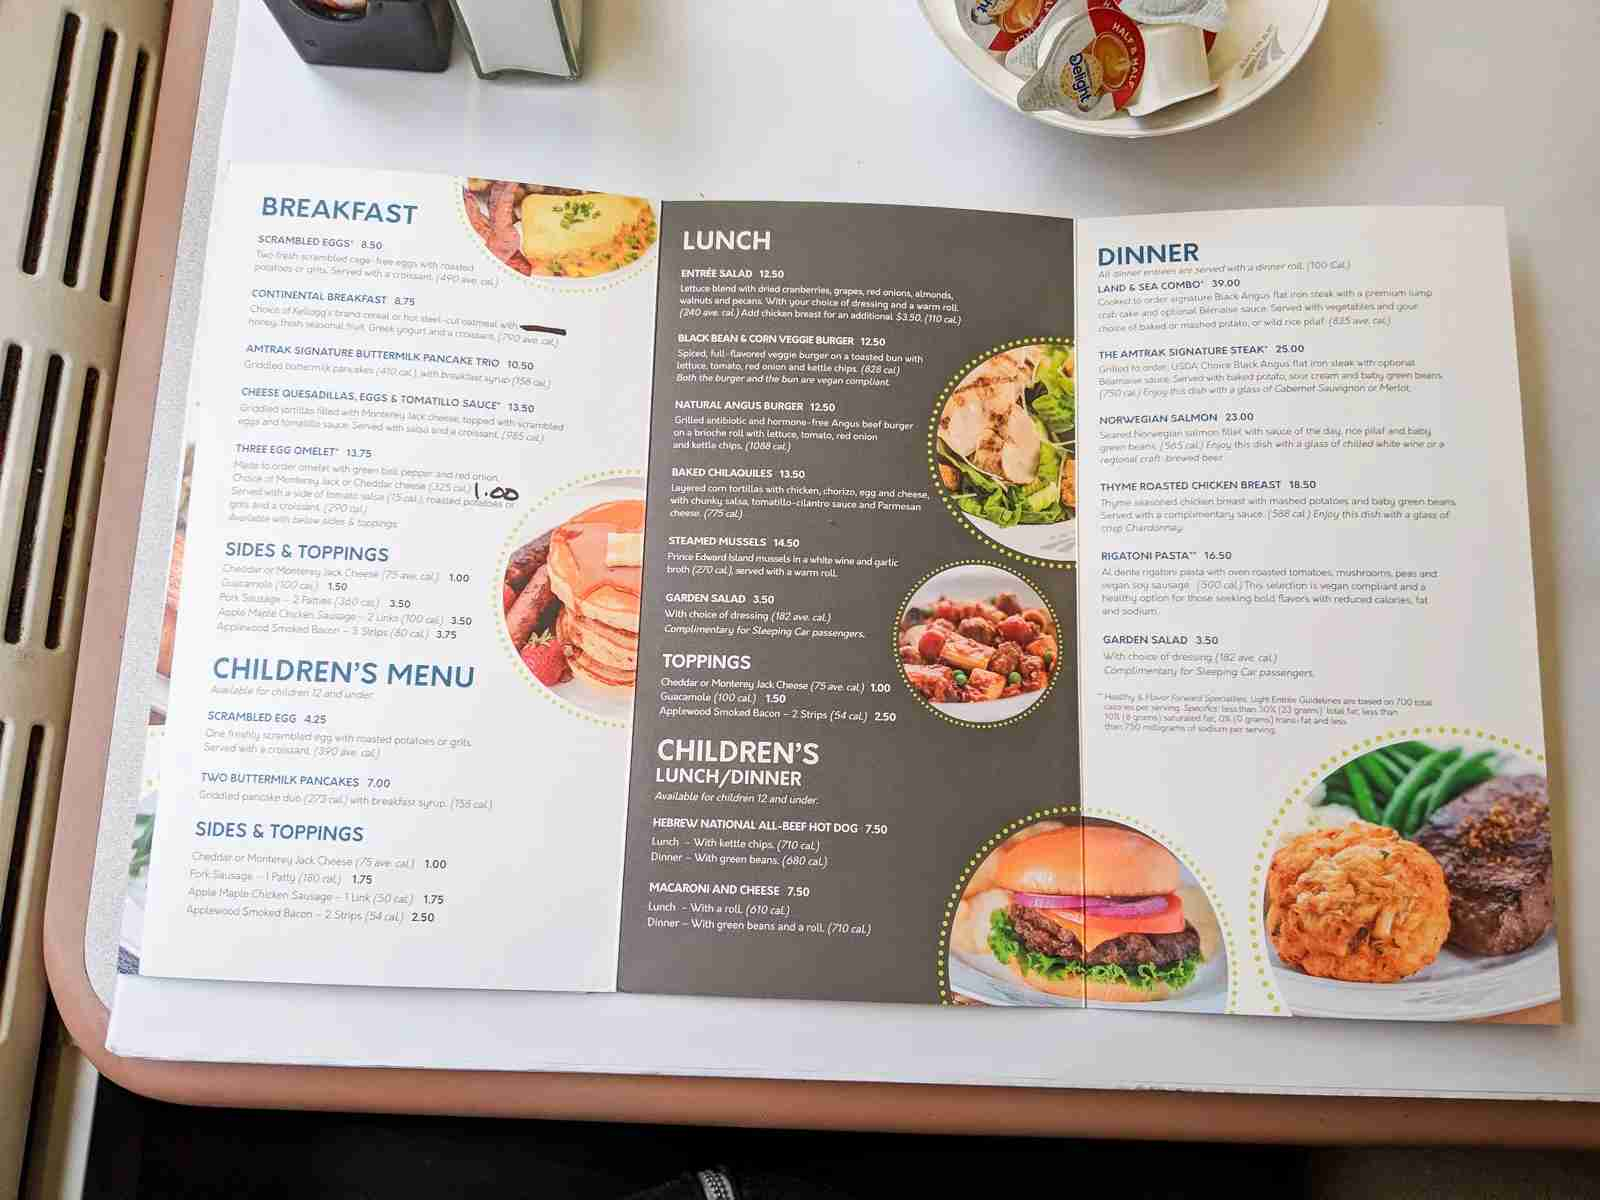 The dining car menu for our trip.